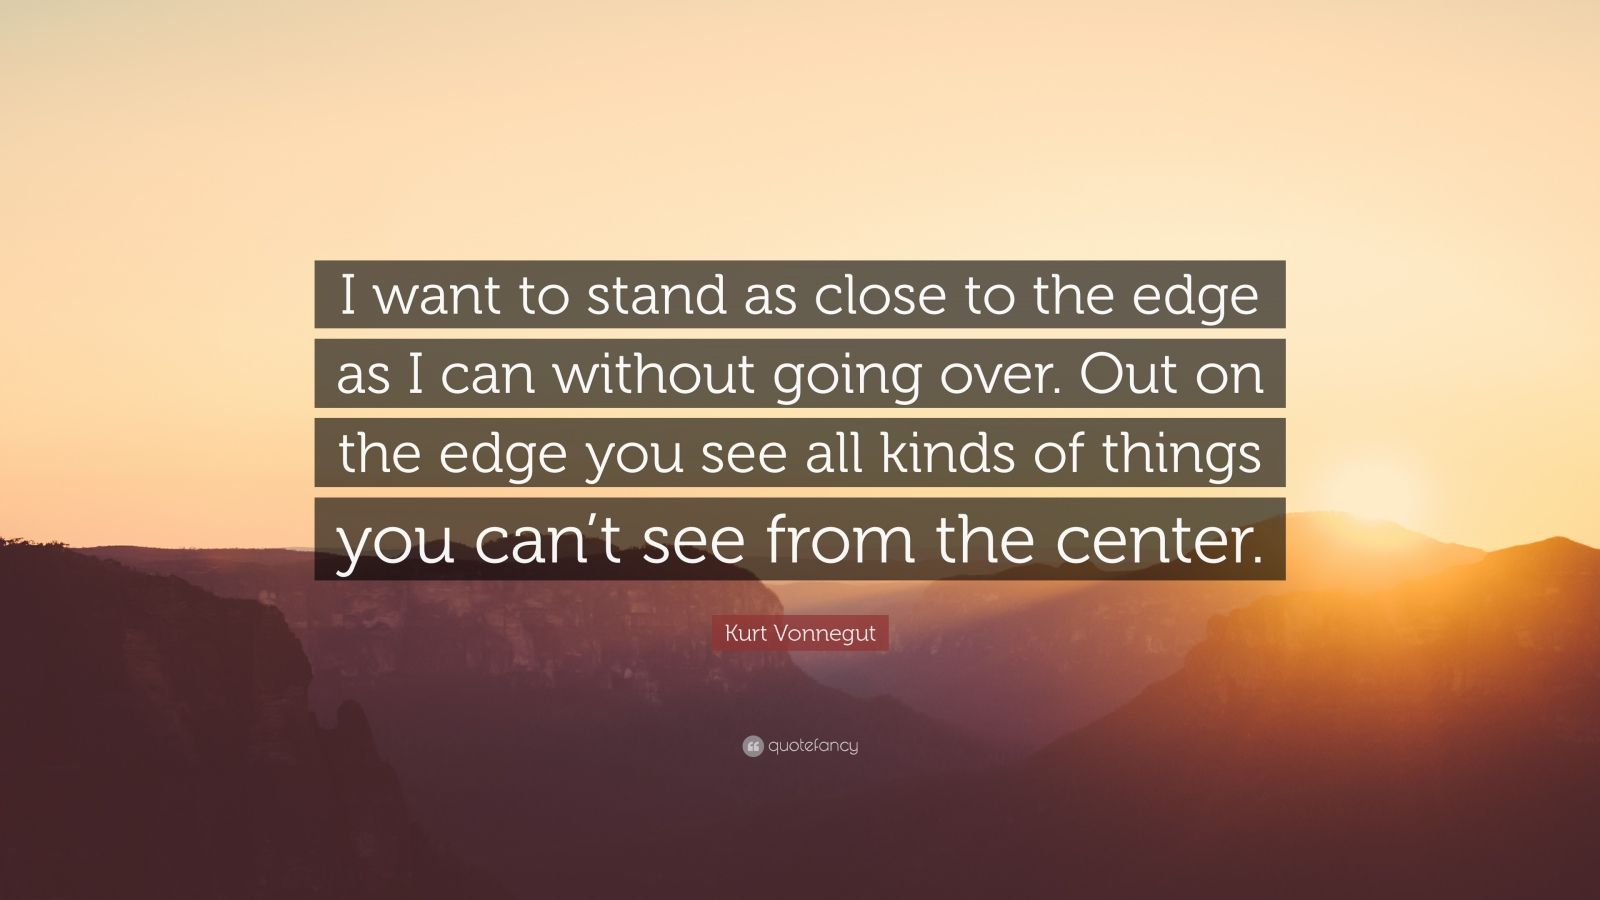 Ernest Hemingway Quote Wallpaper Kurt Vonnegut Quote I Want To Stand As Close To The Edge